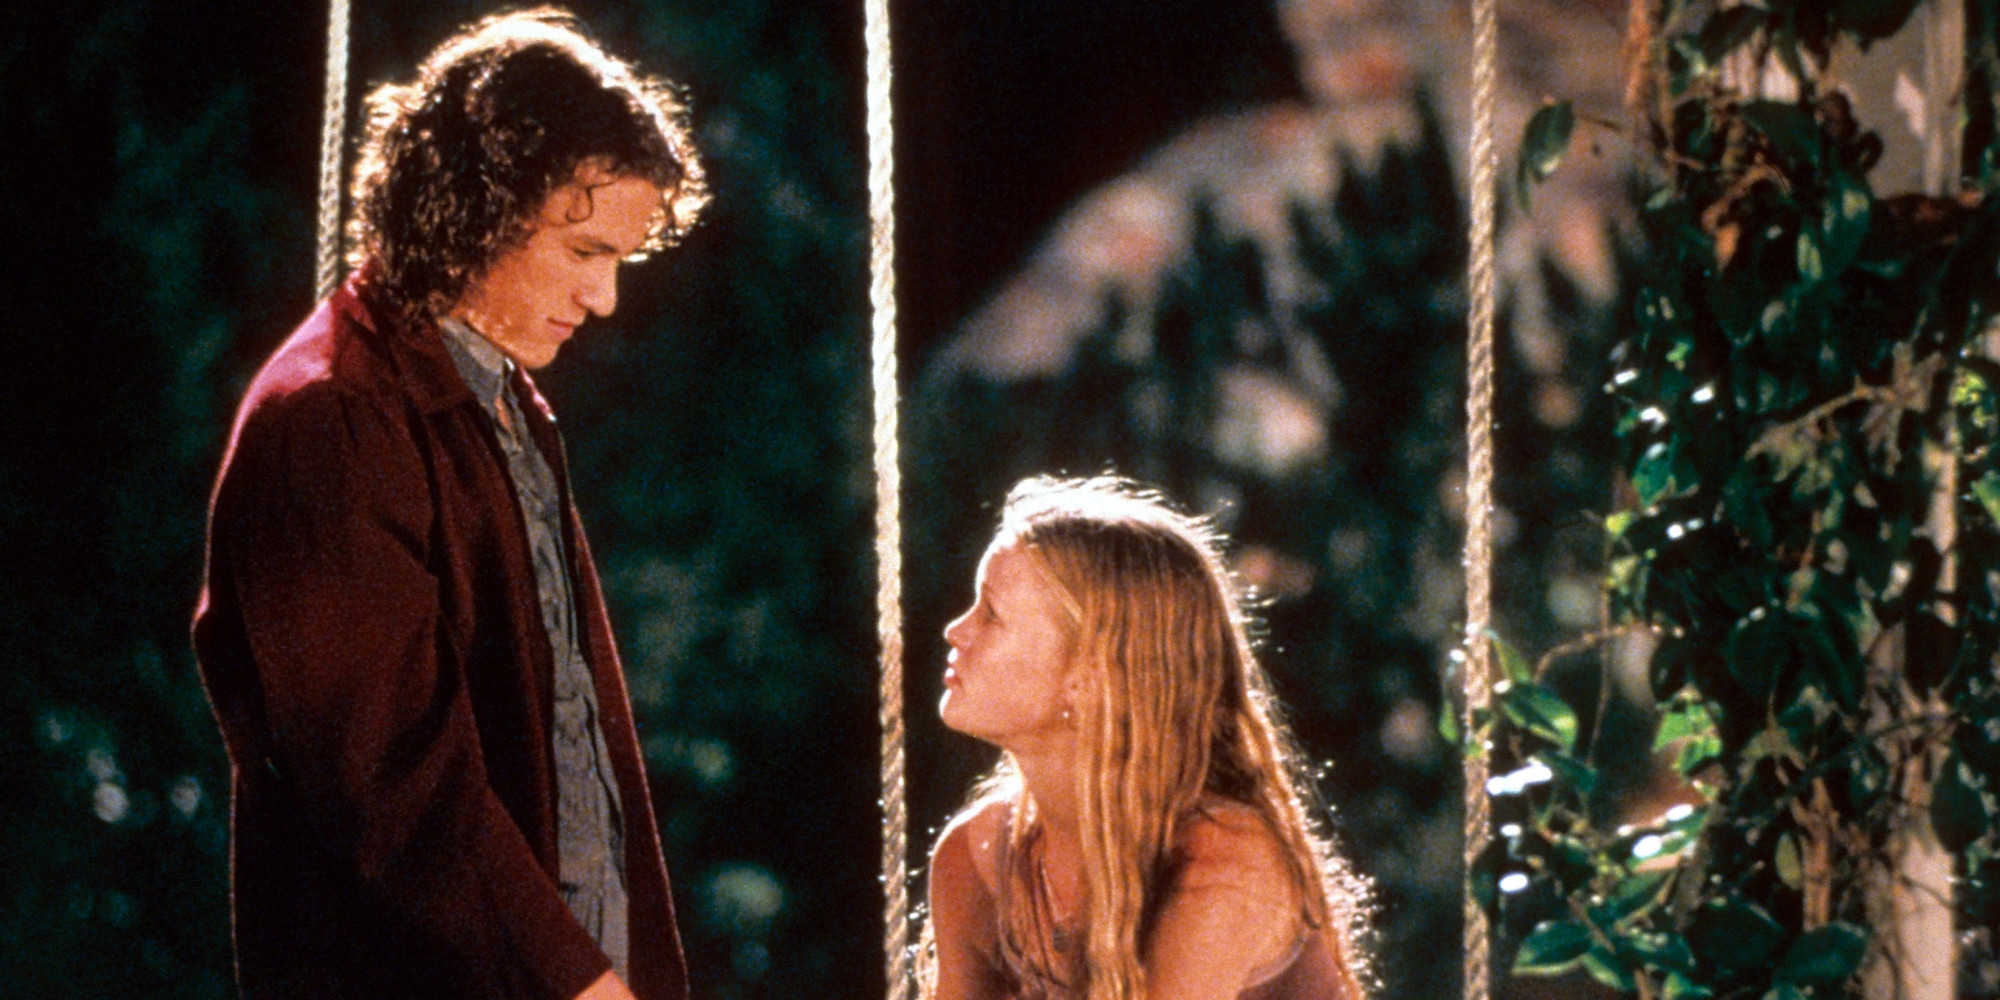 Ten Things I Hate About You Film Stills: 10 Things We Love About '10 Things I Hate About You